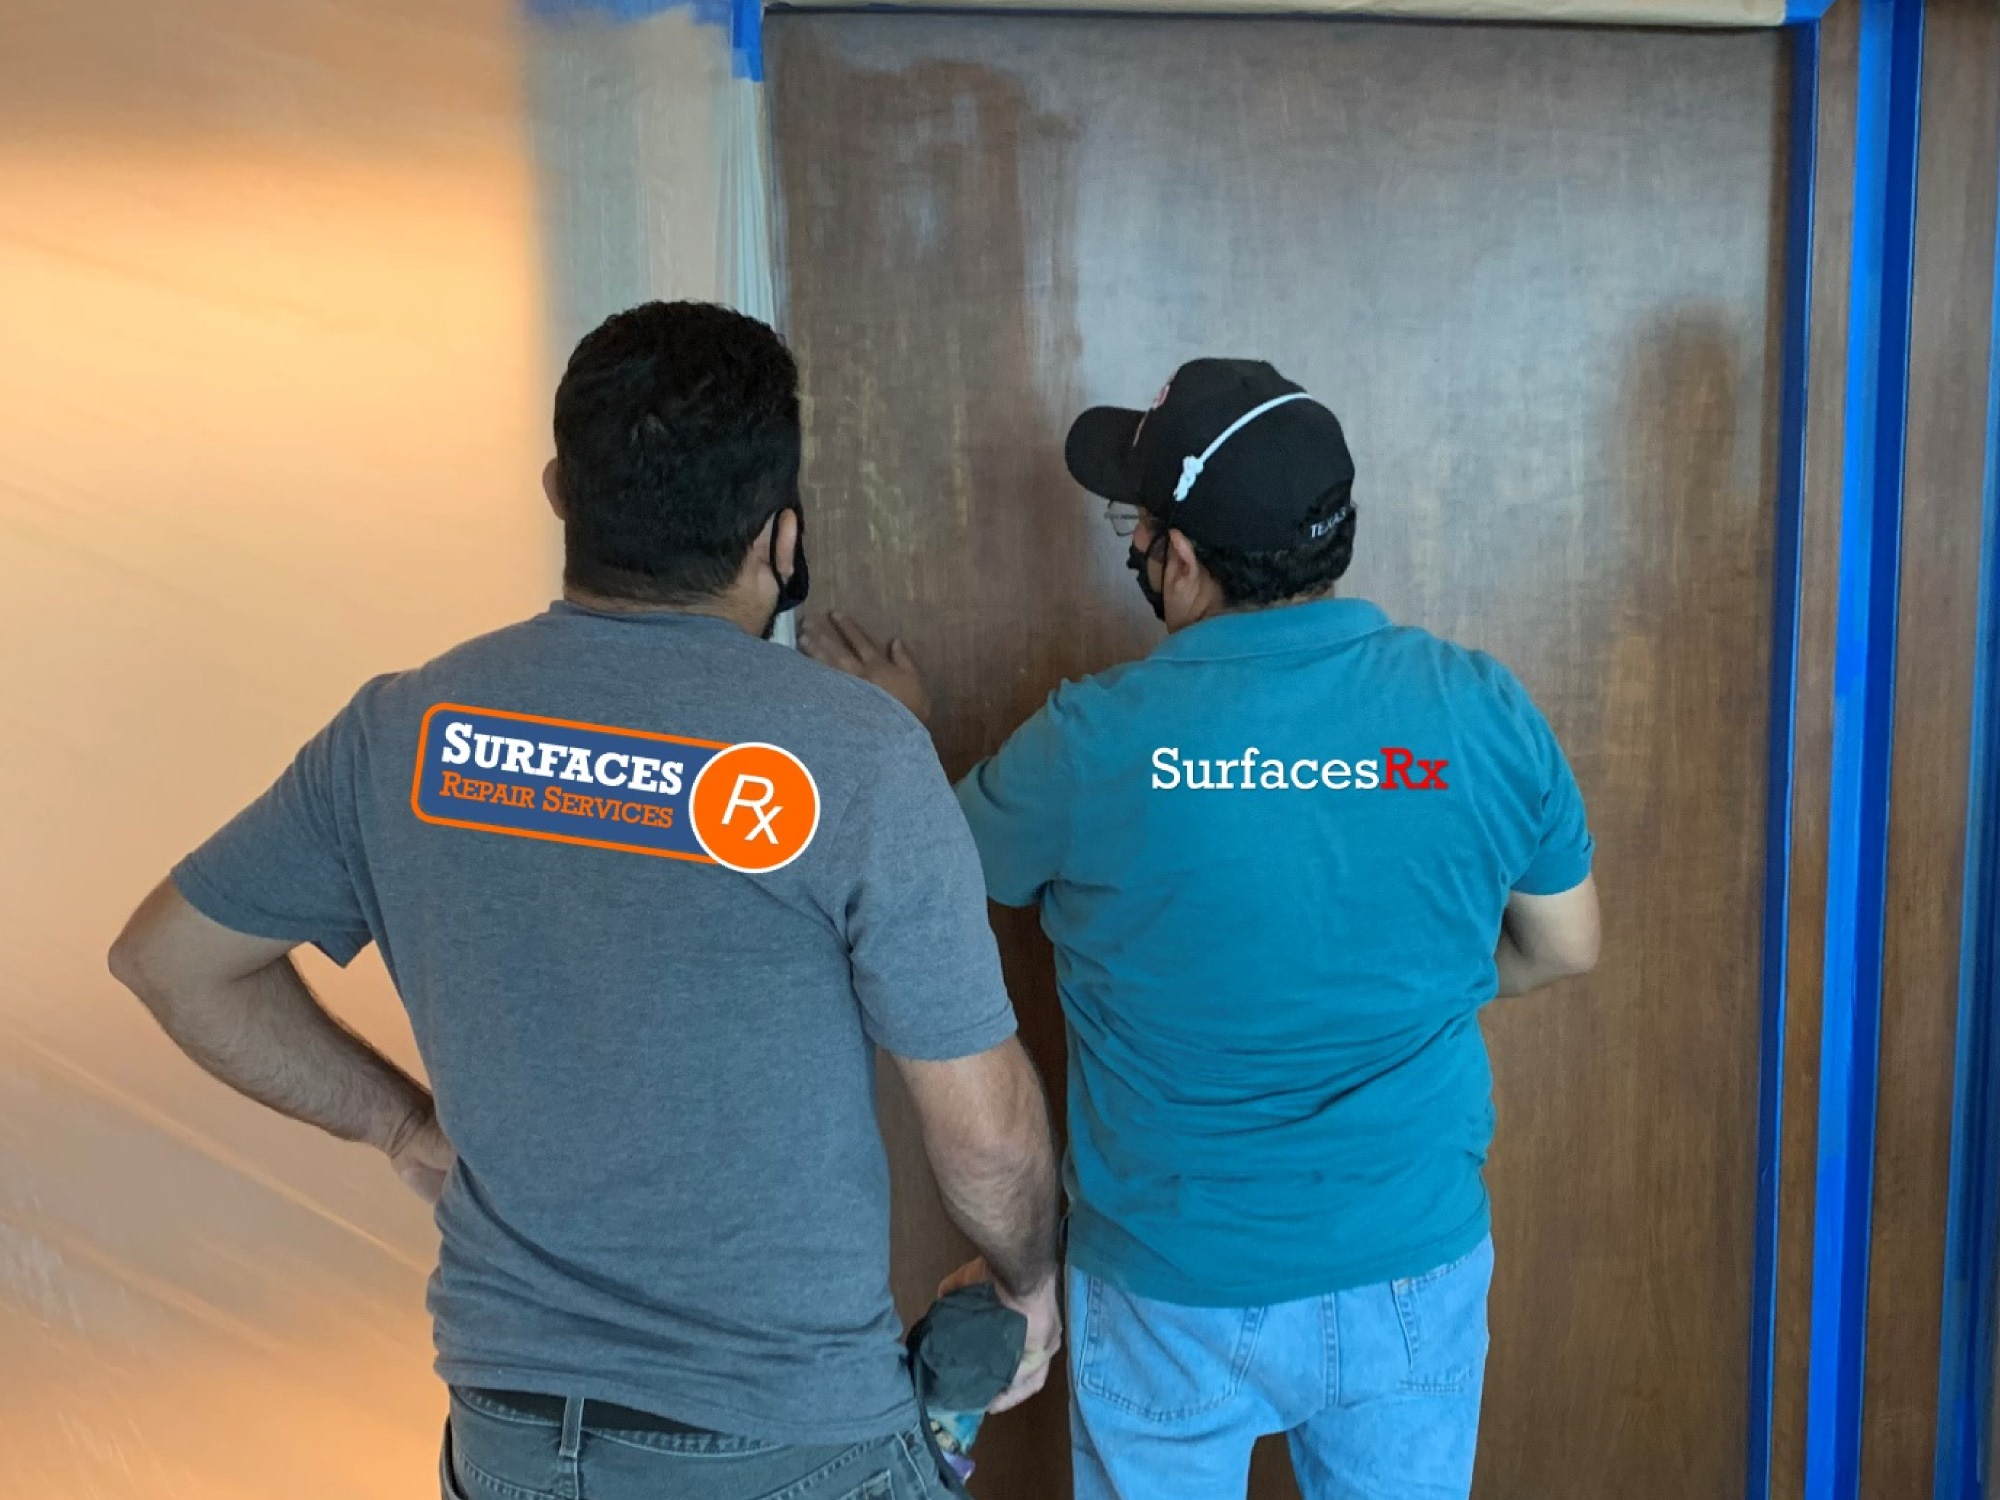 Surfaces Rx Applying Another Coat of Finish to wood Millwork in Dallas TX Home